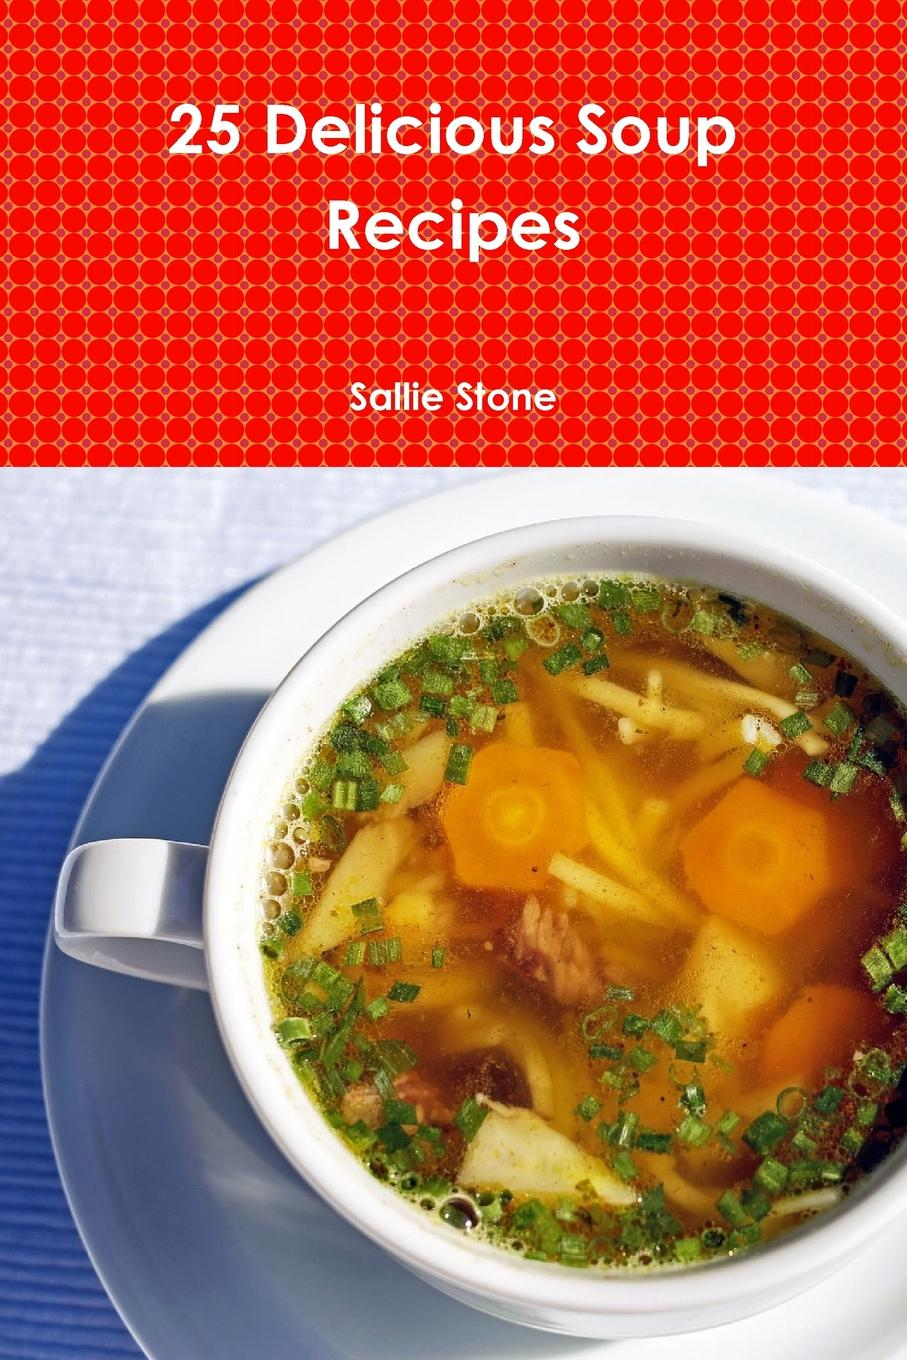 Sallie Stone 25 Delicious Soup Recipes stone soup